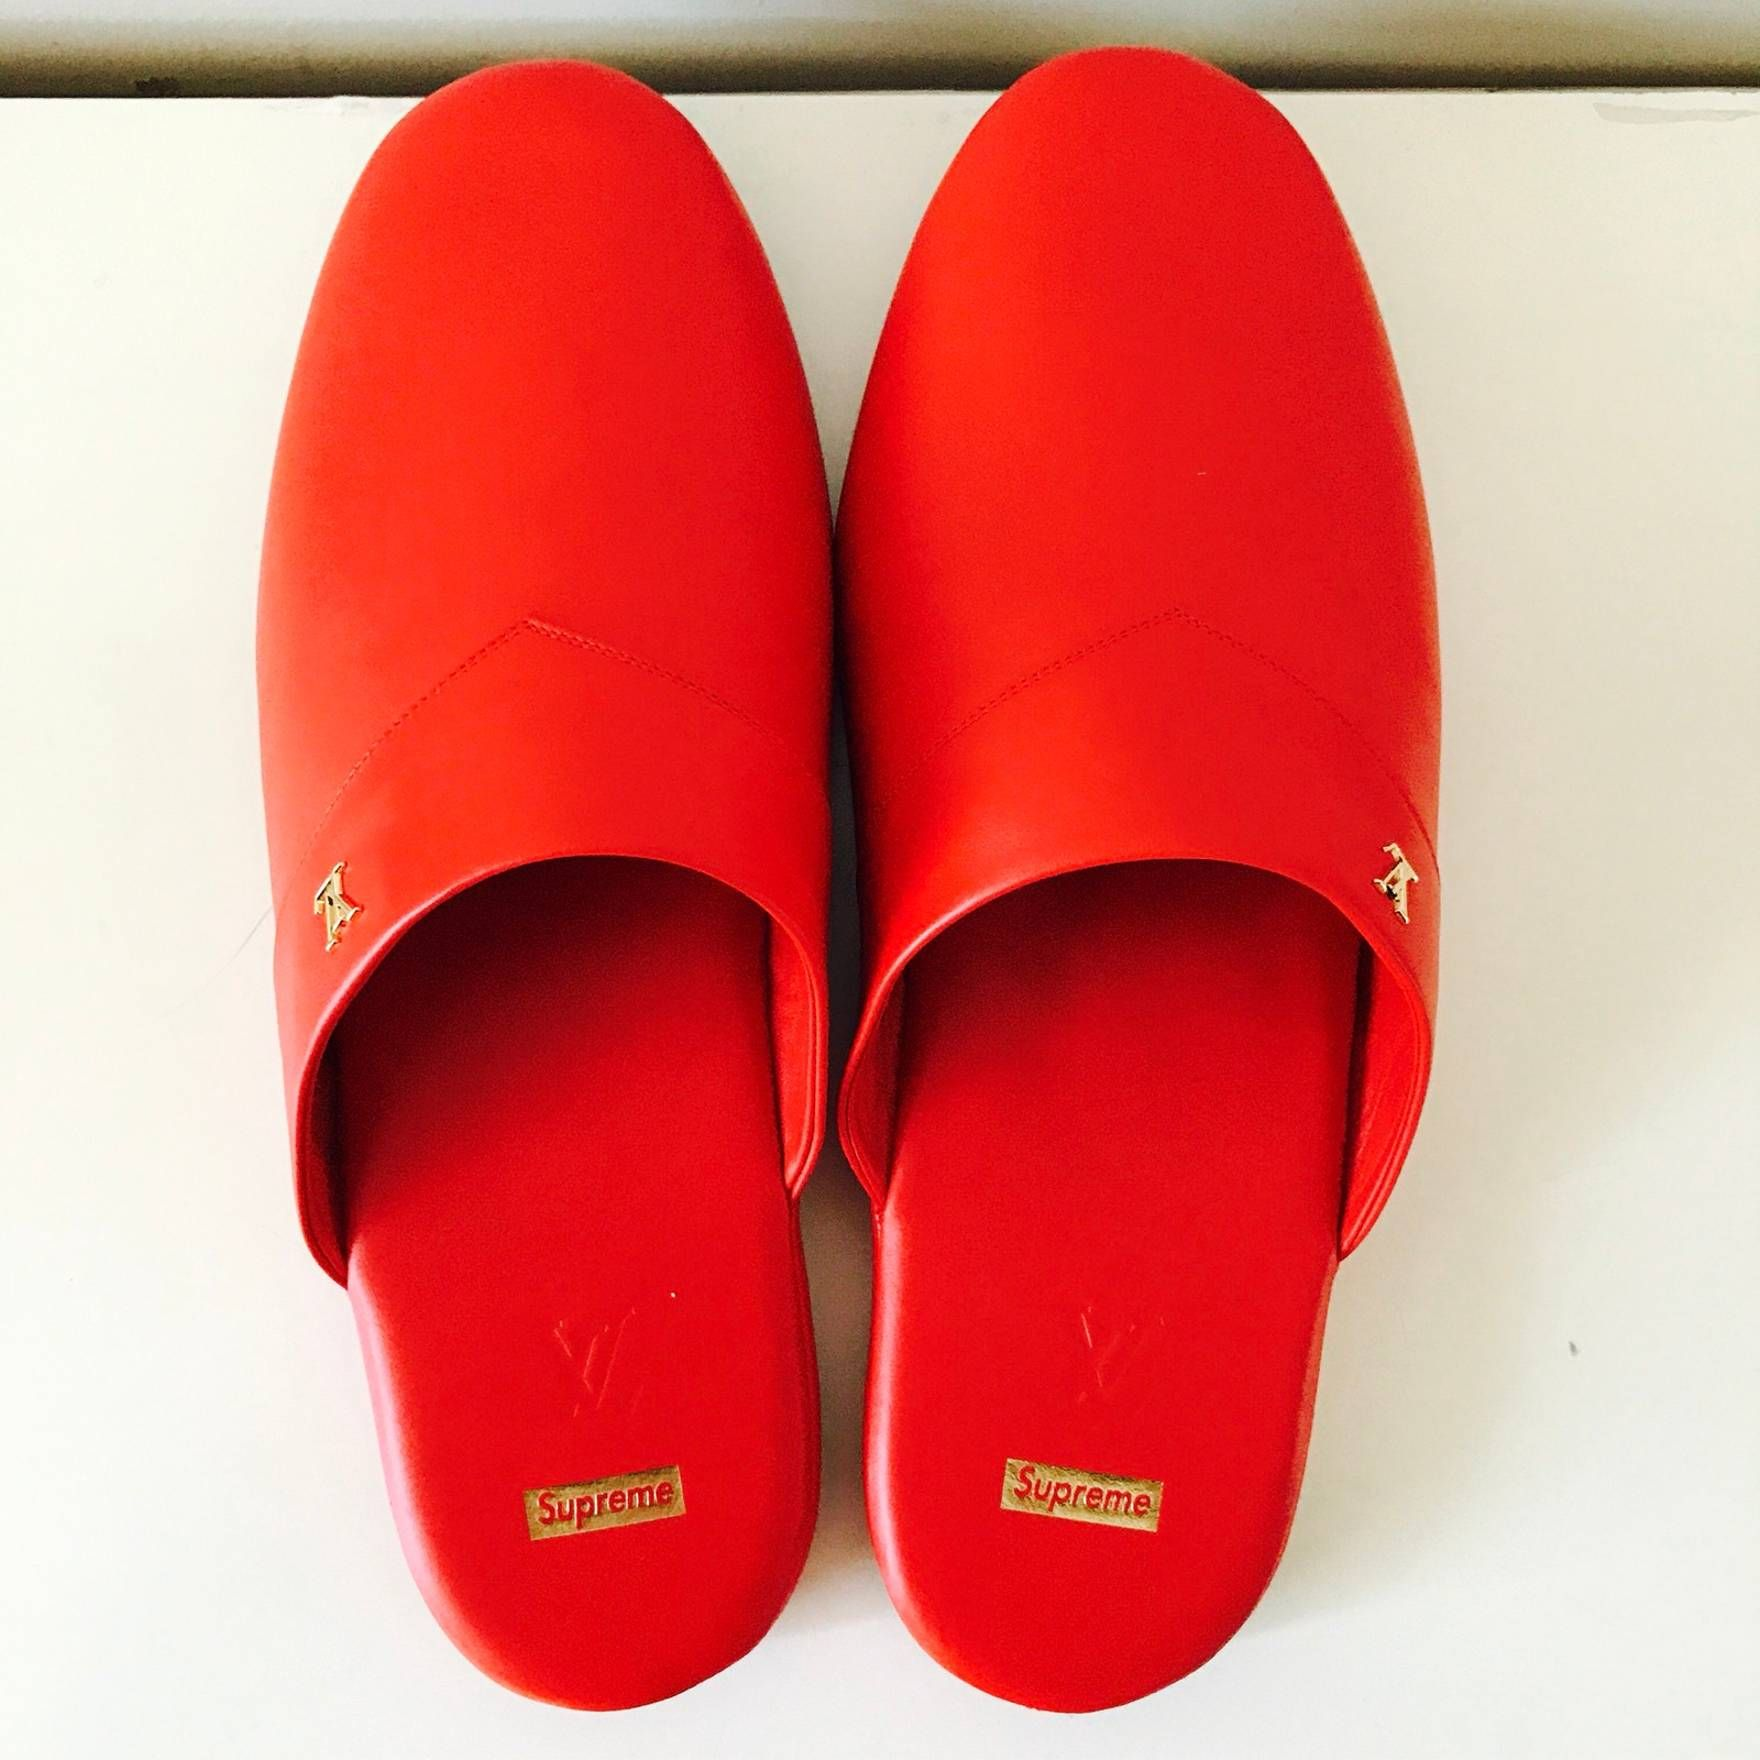 f3ad7eaf538d Supreme Louis Vuitton X Supreme Red Leather Slippers Size US 9   EU ...